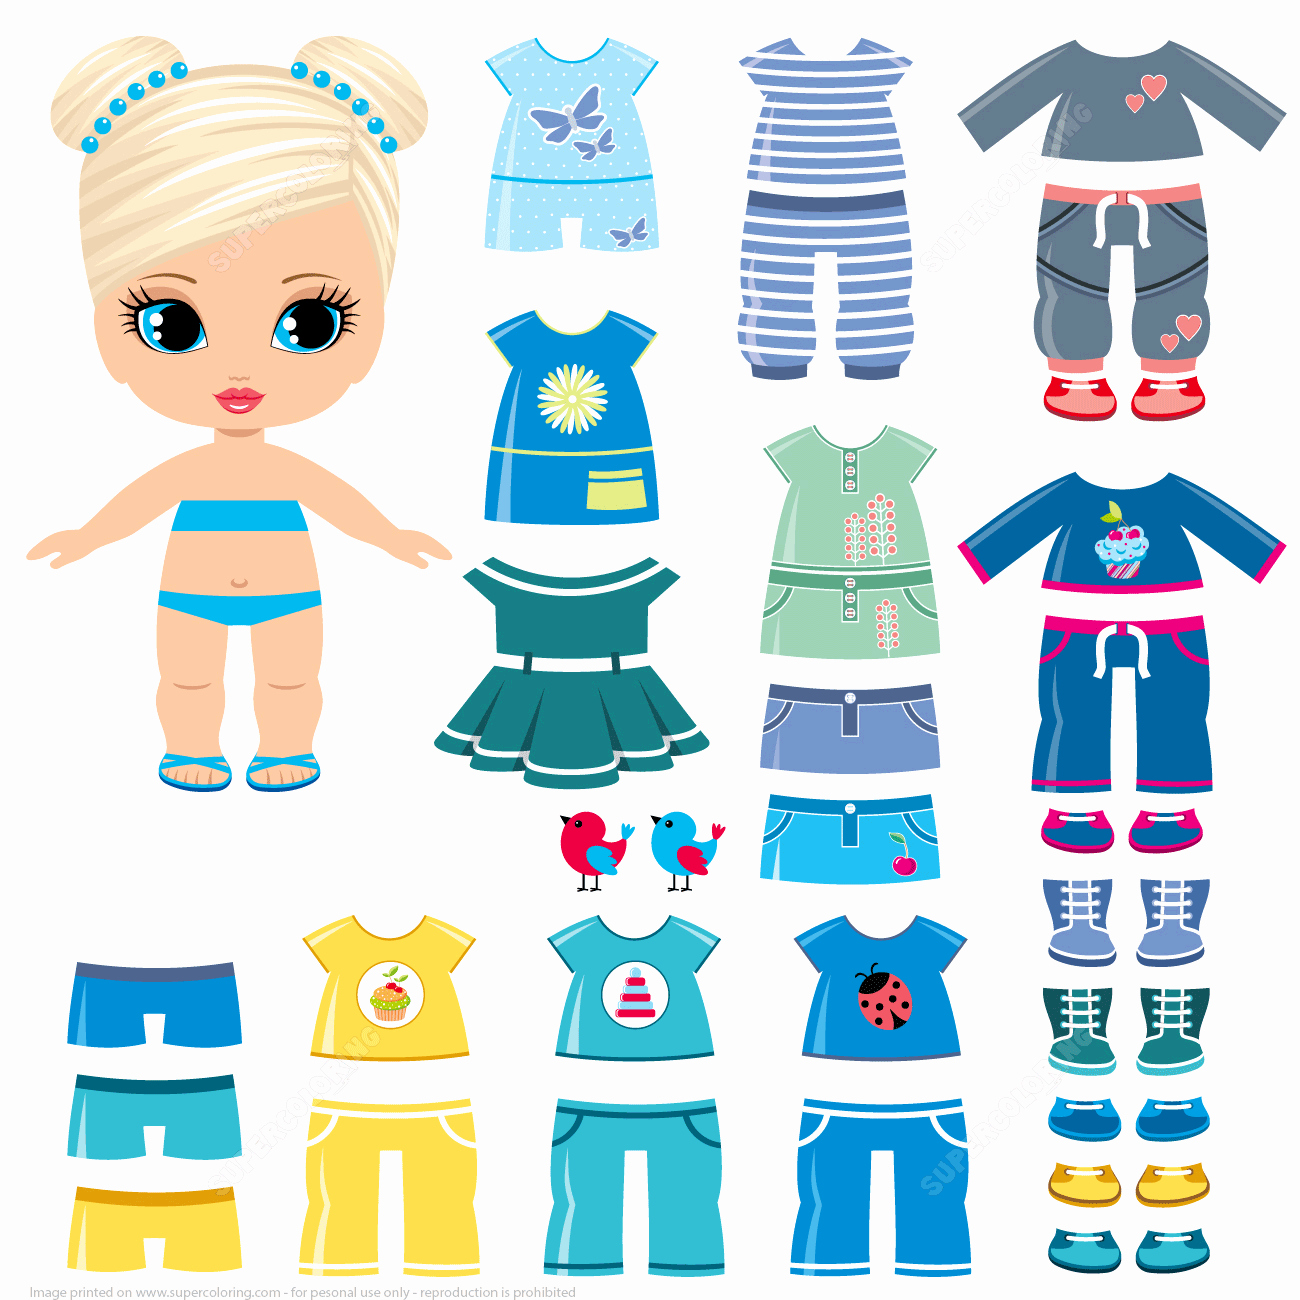 Paper Doll Clothes Template Awesome Summer Clothing and Shoes for A Little Girl Paper Doll